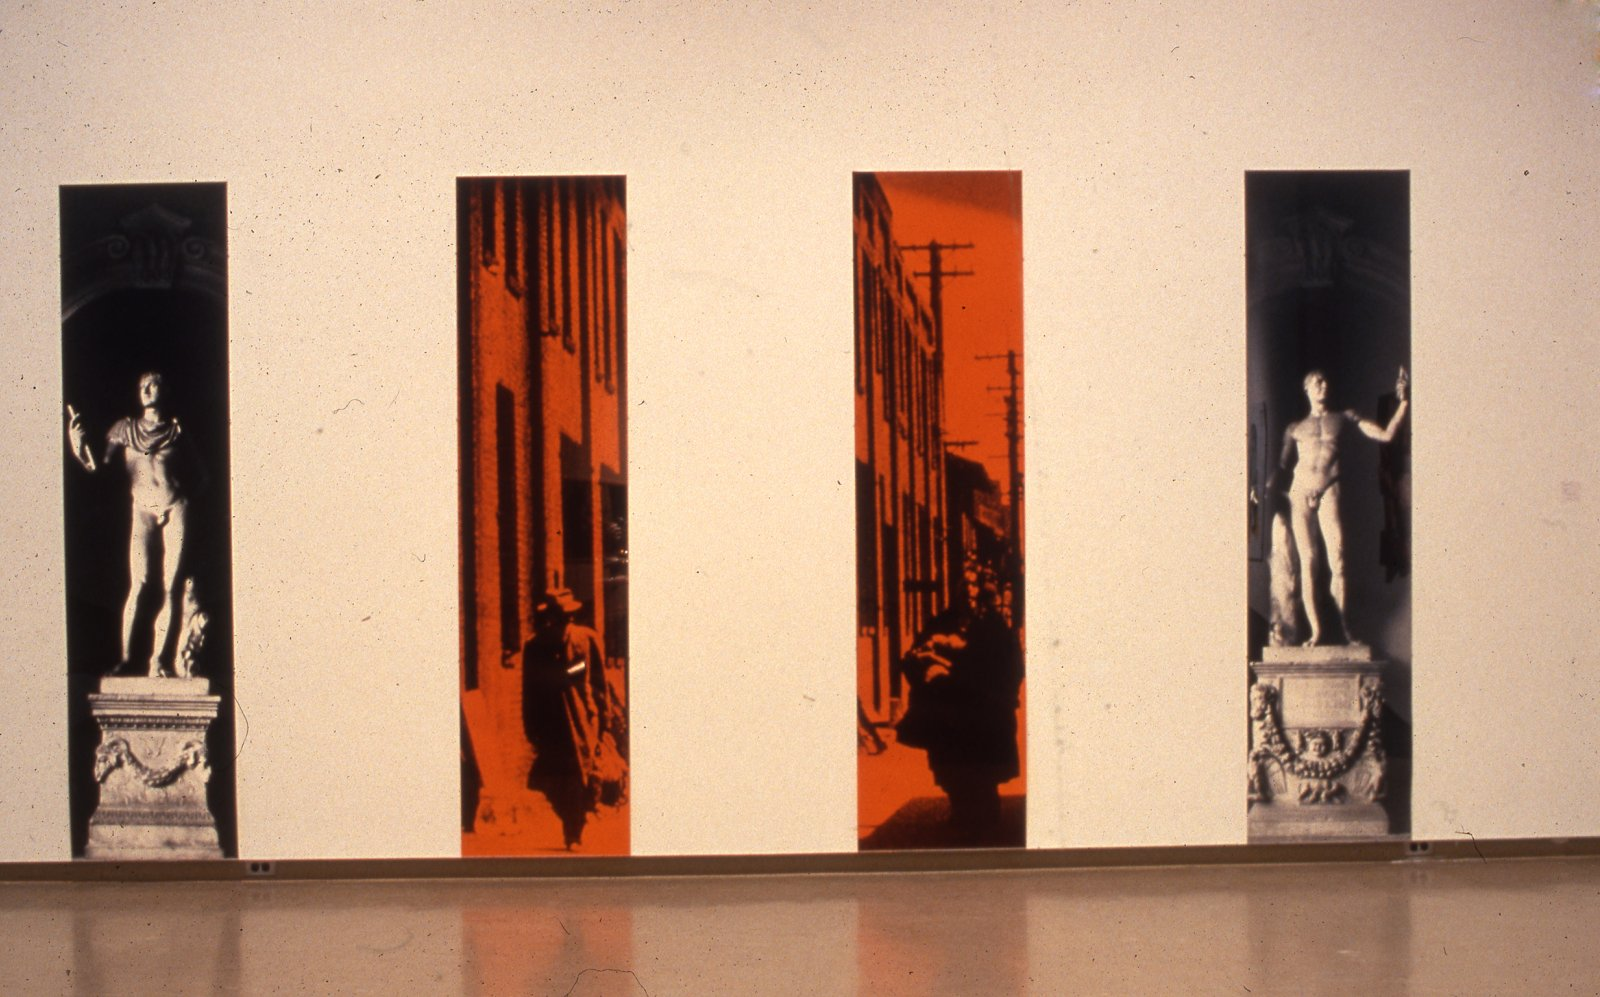 Ian Wallace,The Imperial City, 1986,black and white photomurals with plexiglas,4 panels,each 116 x 24 in. (293 x 61 cm)